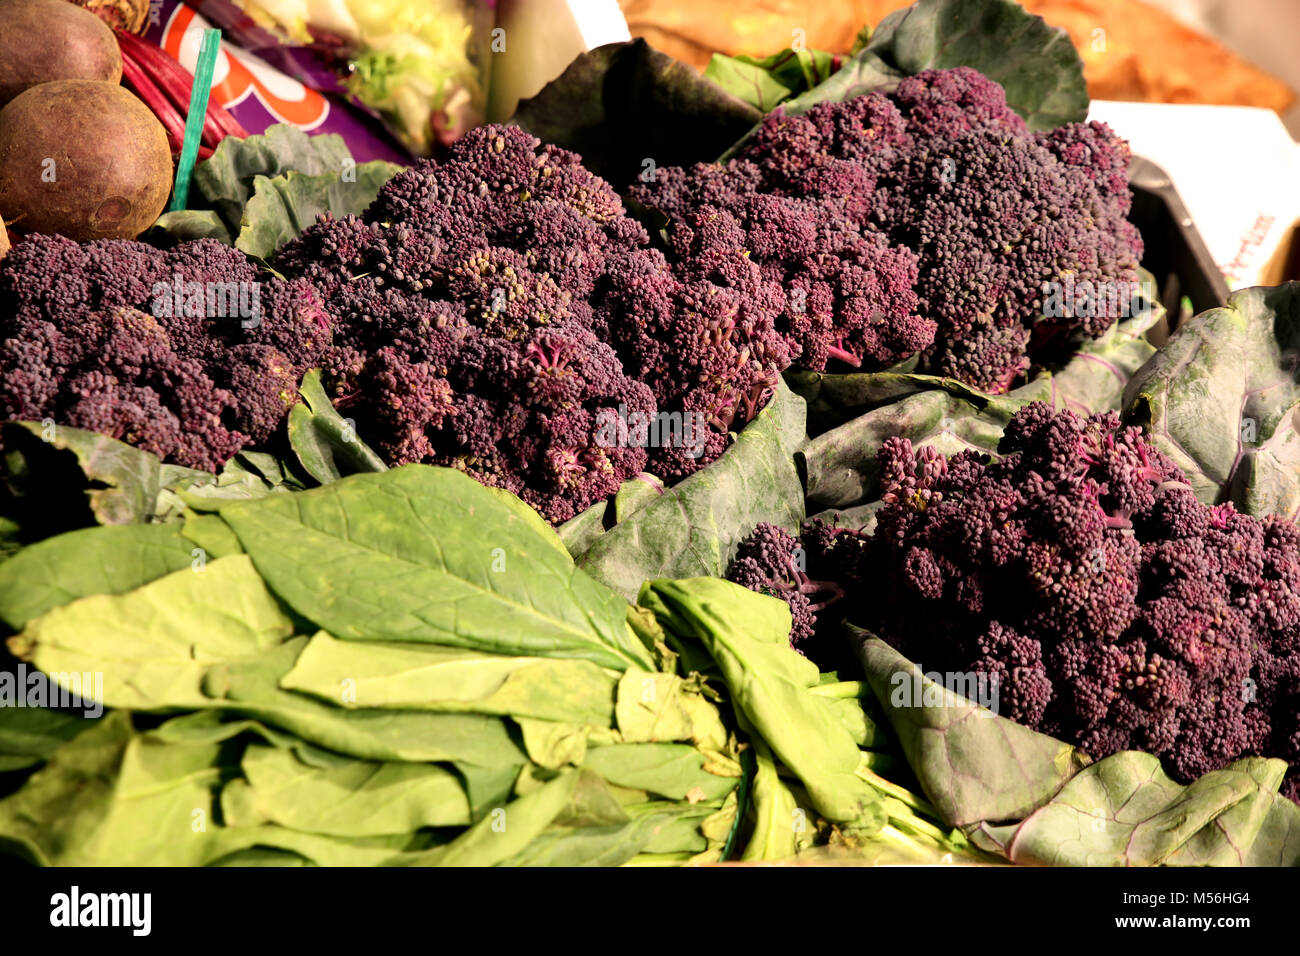 violet broccoli - Mercado de Tirana Market Hall - Stock Image